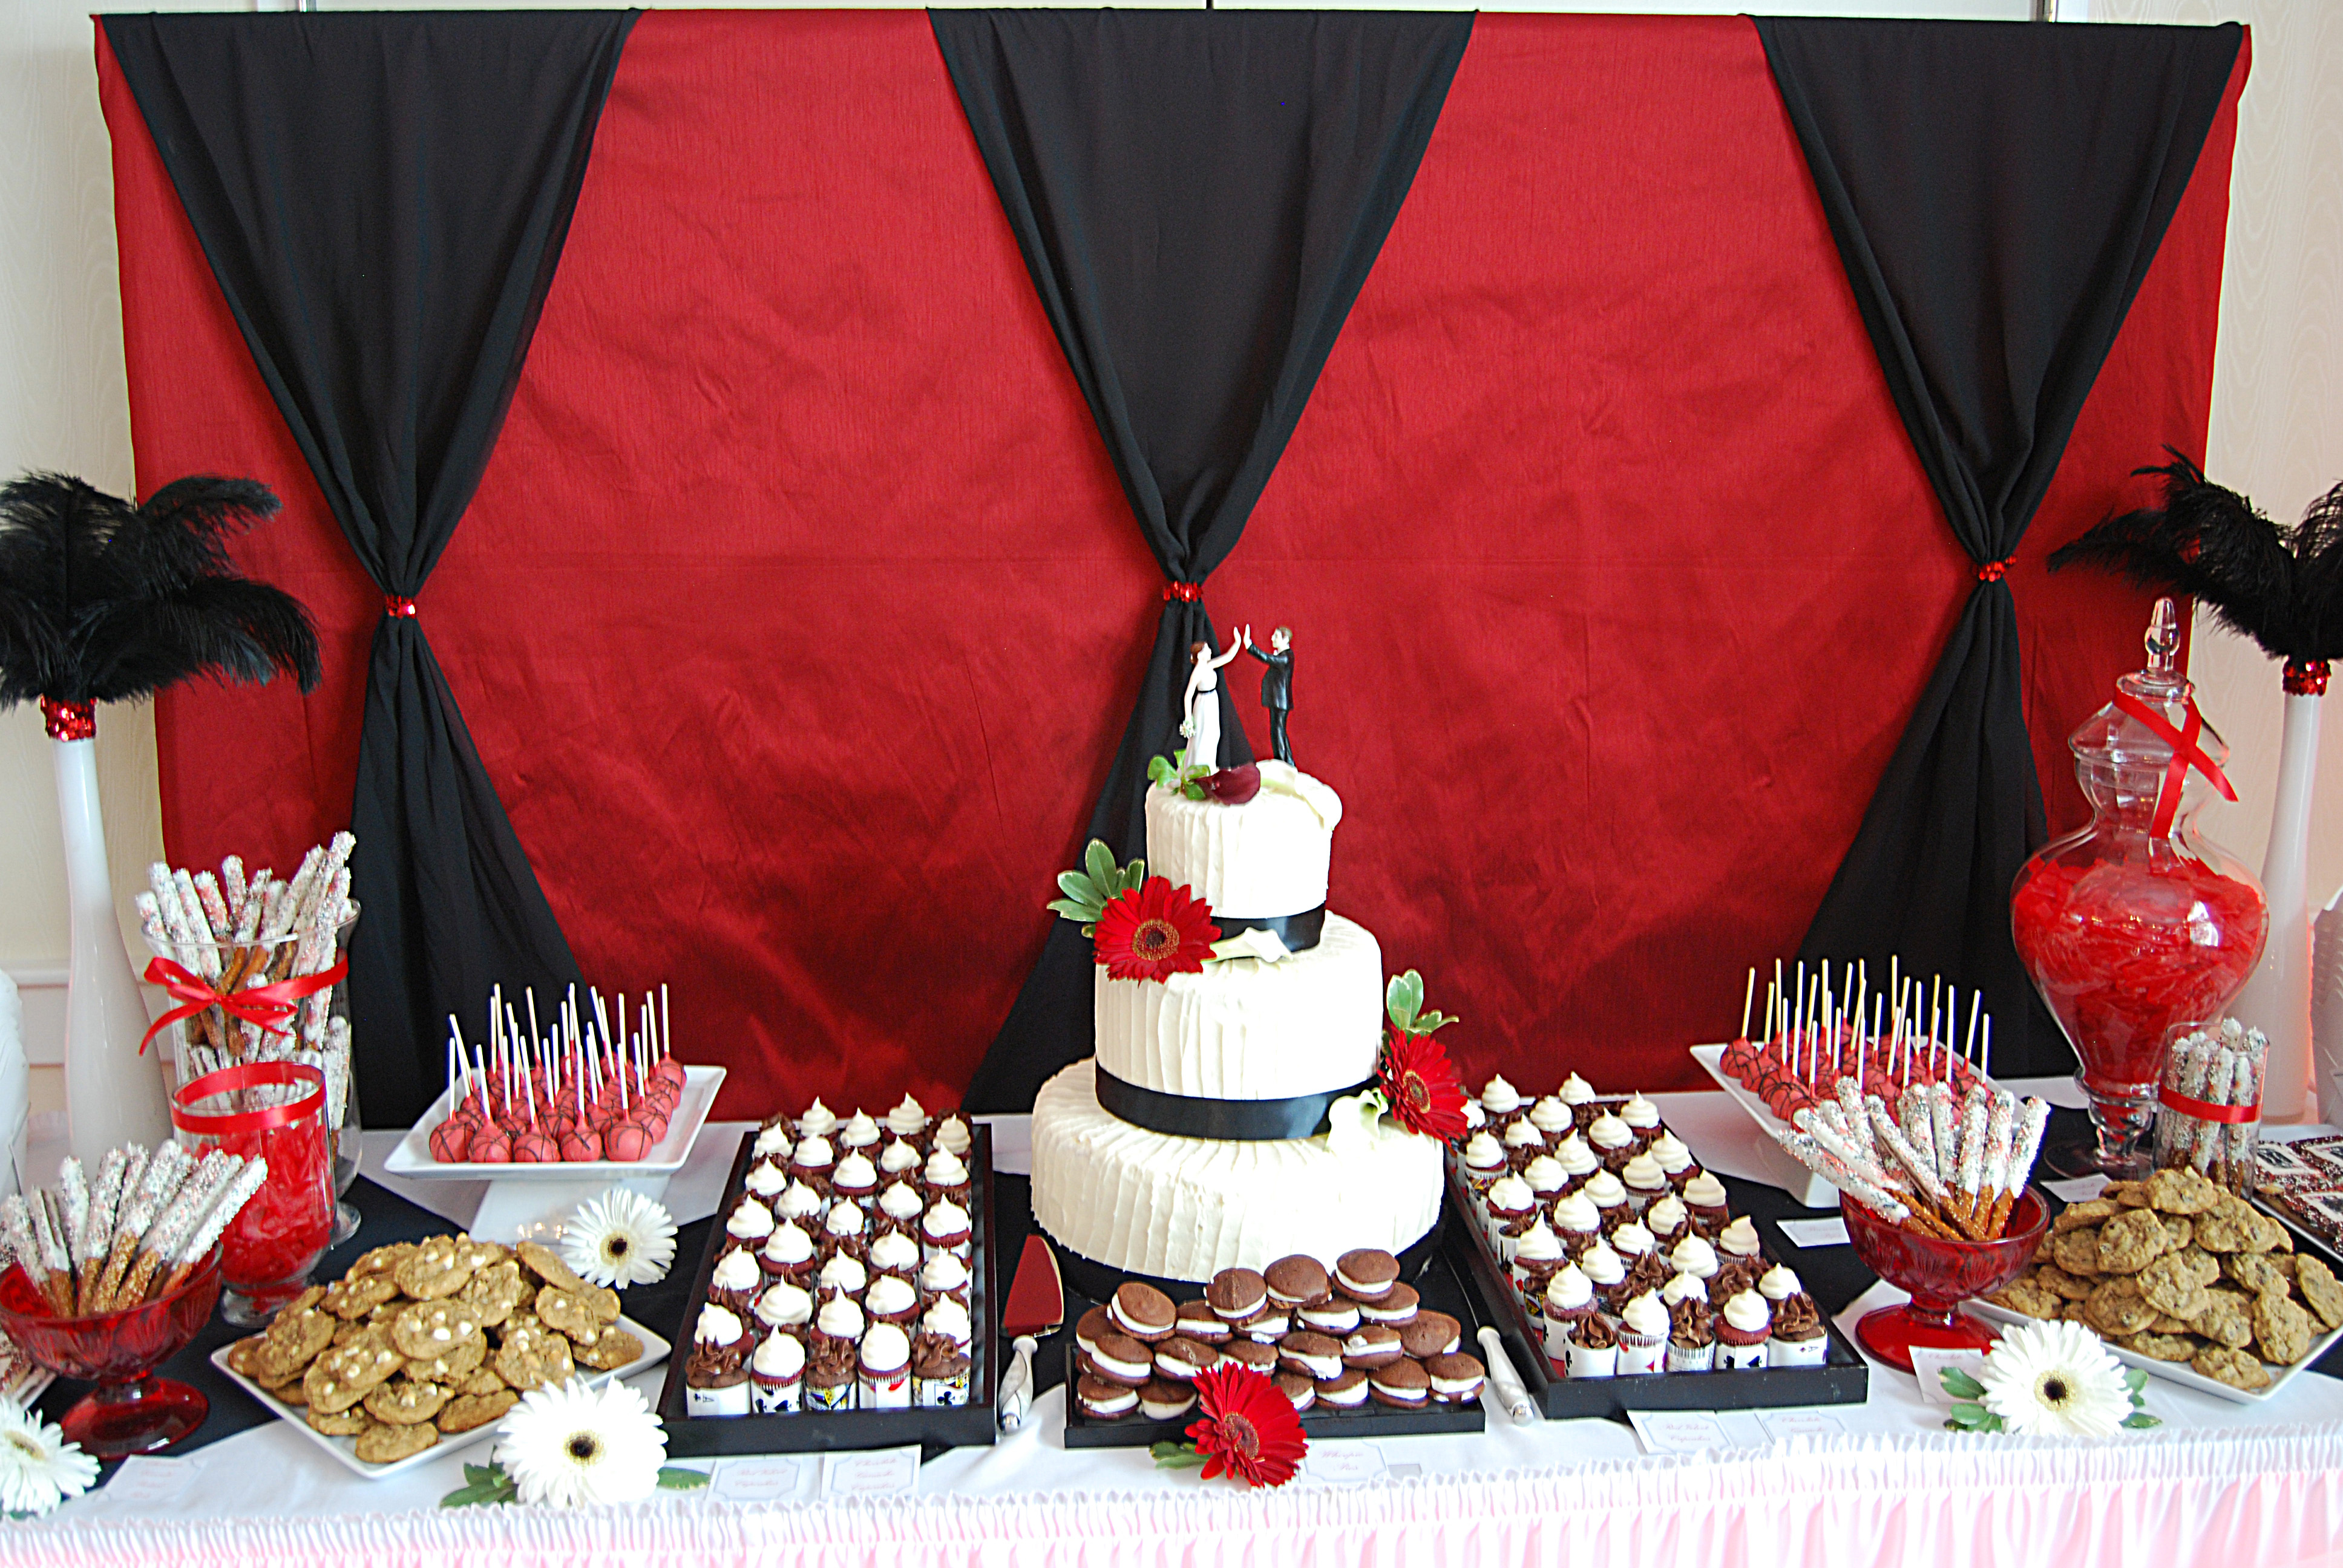 Nothing bakes like a parrott casino themed wedding desert table casino themed wedding desert table junglespirit Images